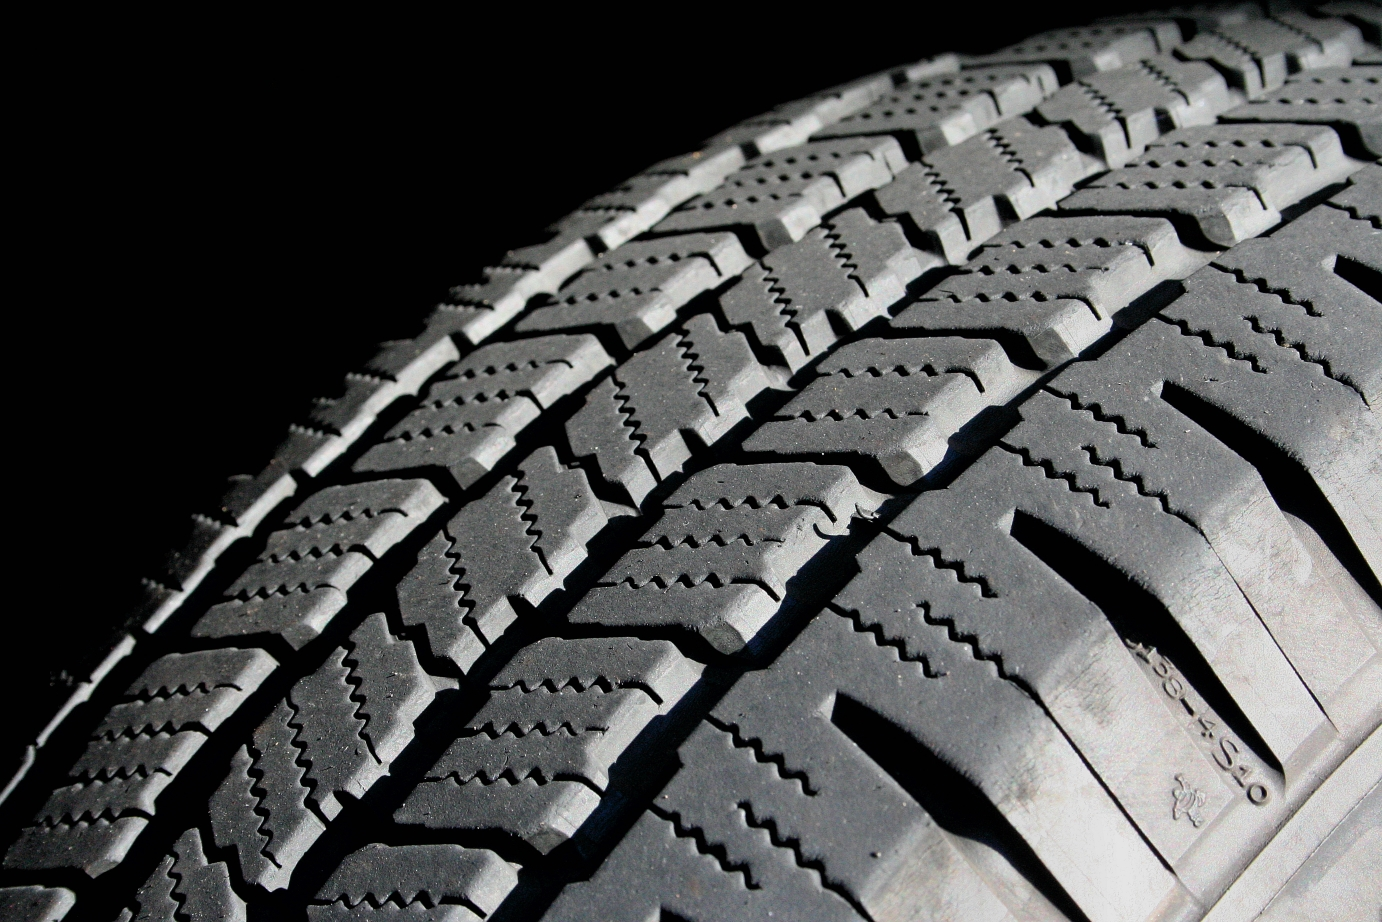 Find Out the Condition of Your Tyres With This Hack